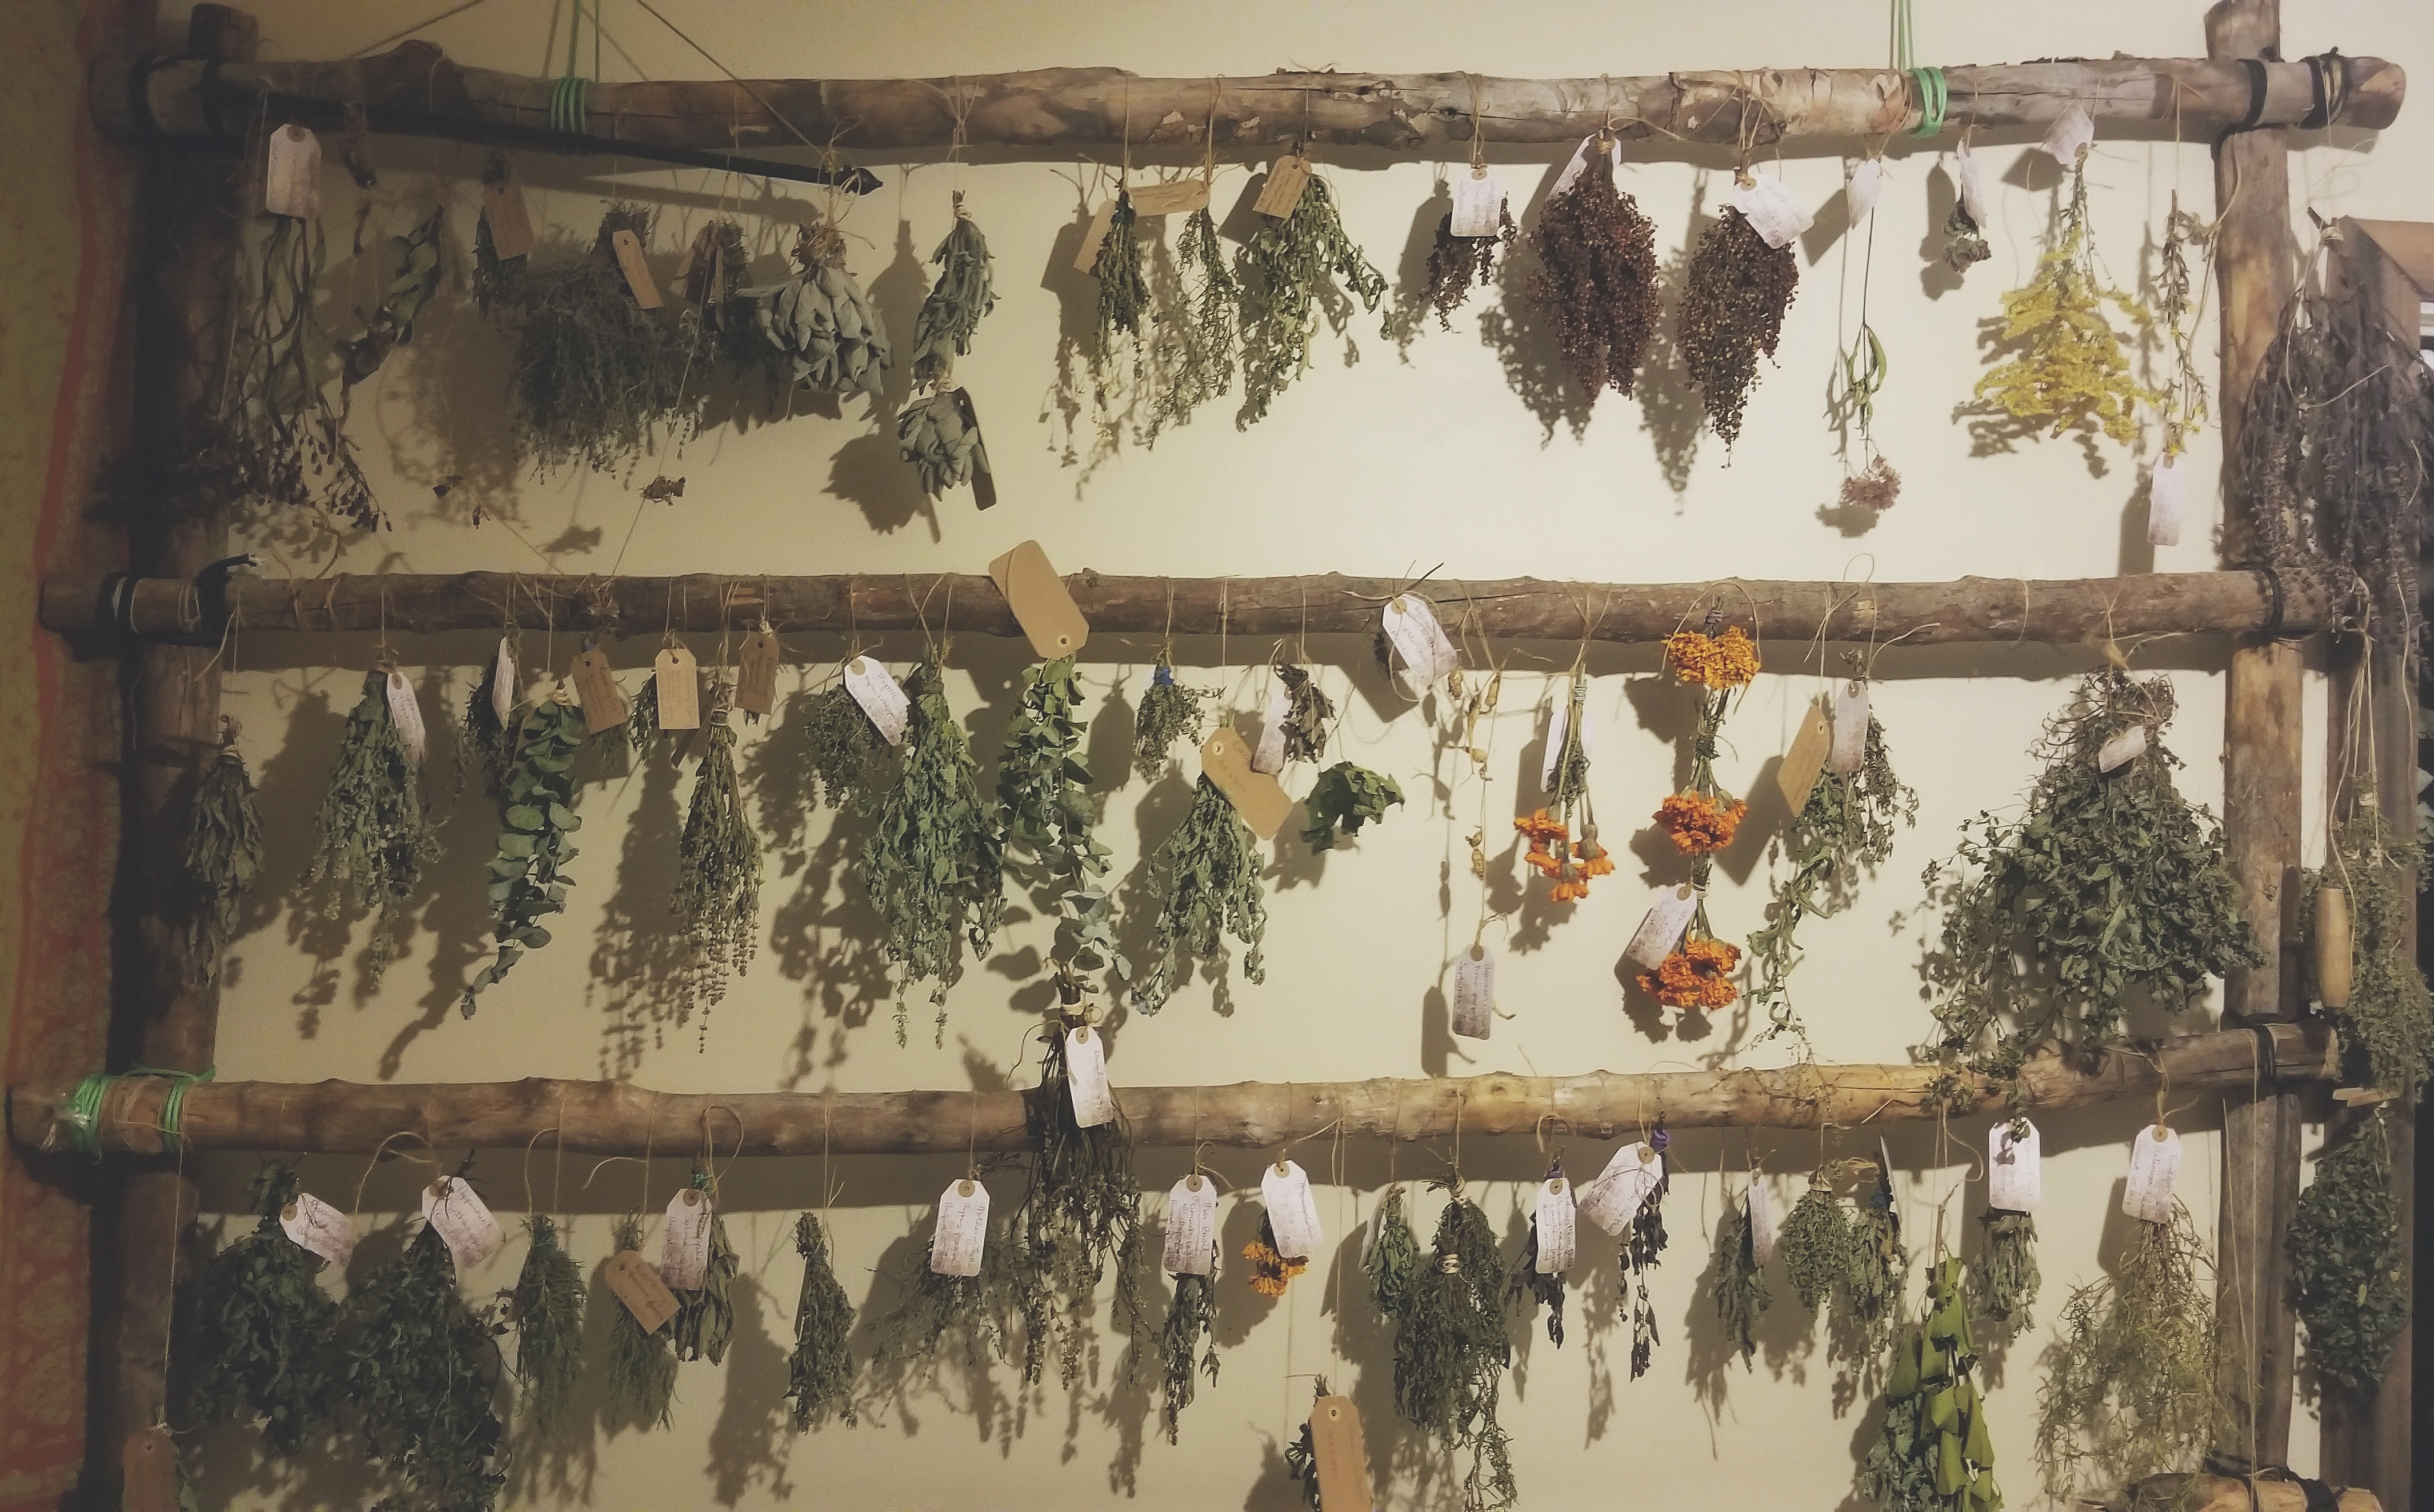 Herbs Drying in the Apothecary